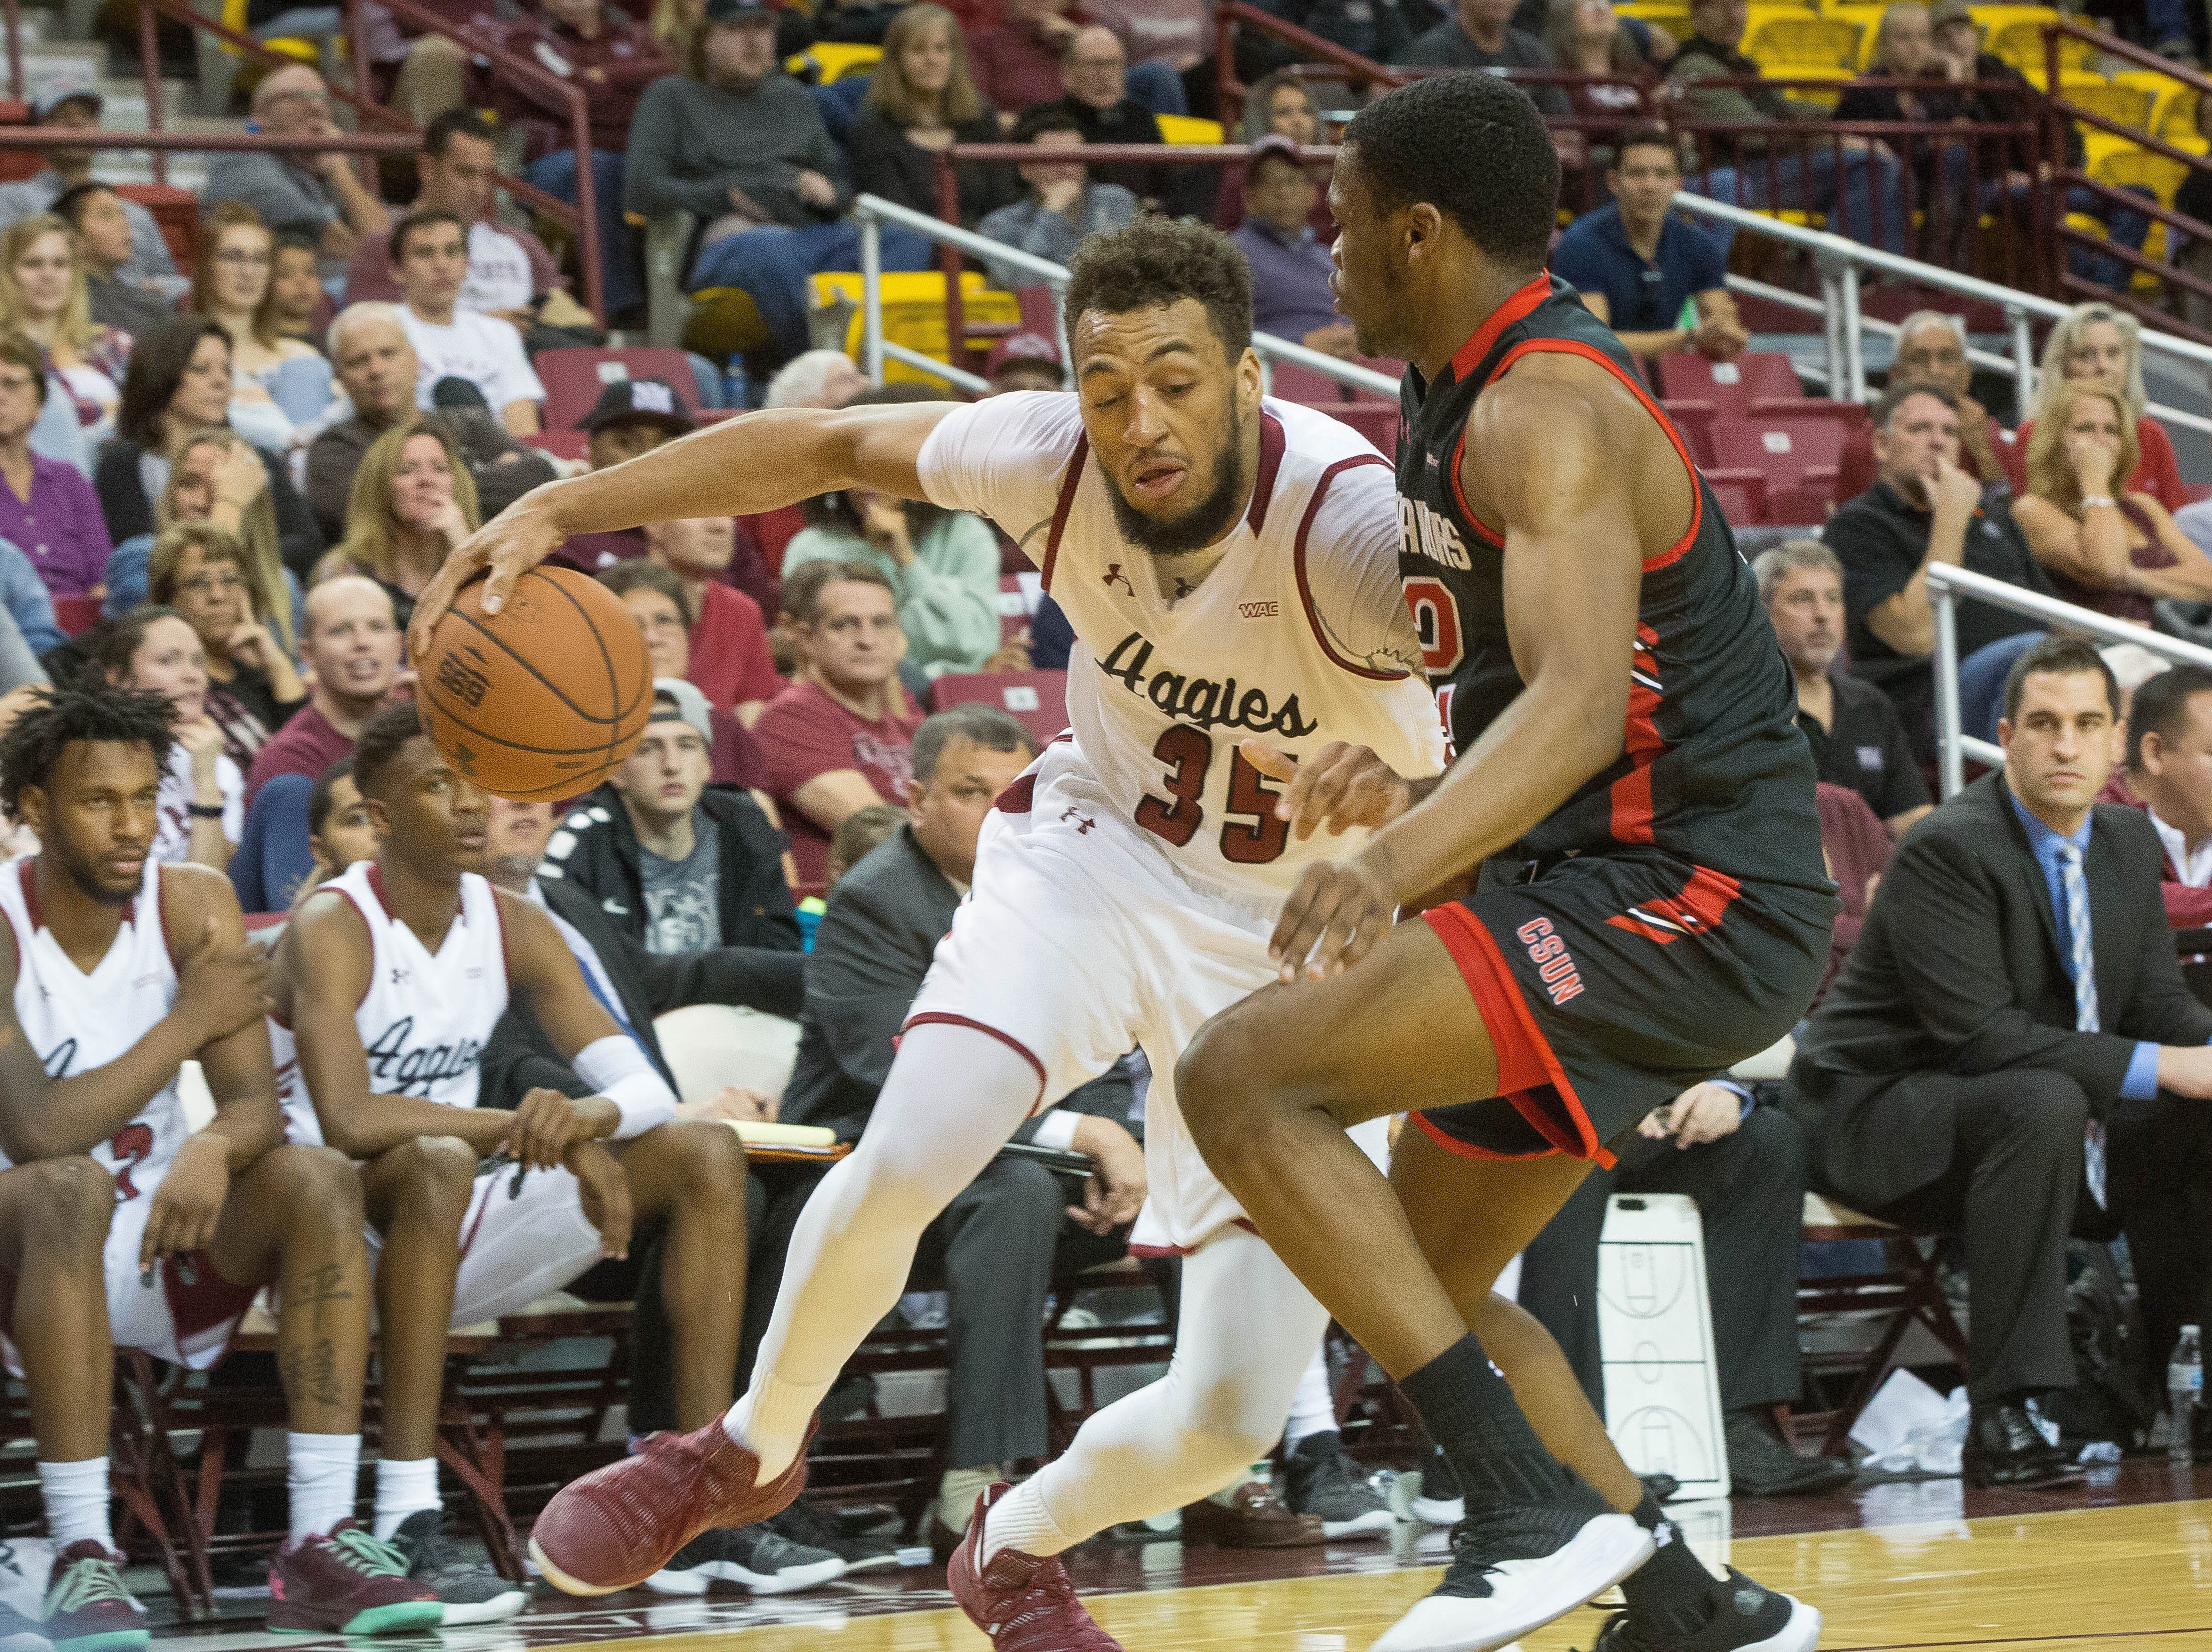 New Mexico State's Johnny Mccants, pushes past California State Univeristy Northridge's Elijah Harkless, during the second half of NMSU's game against CSUN, Wednesday, December 19, 2018 at the Pan American Center. Aggies won 92- 57.